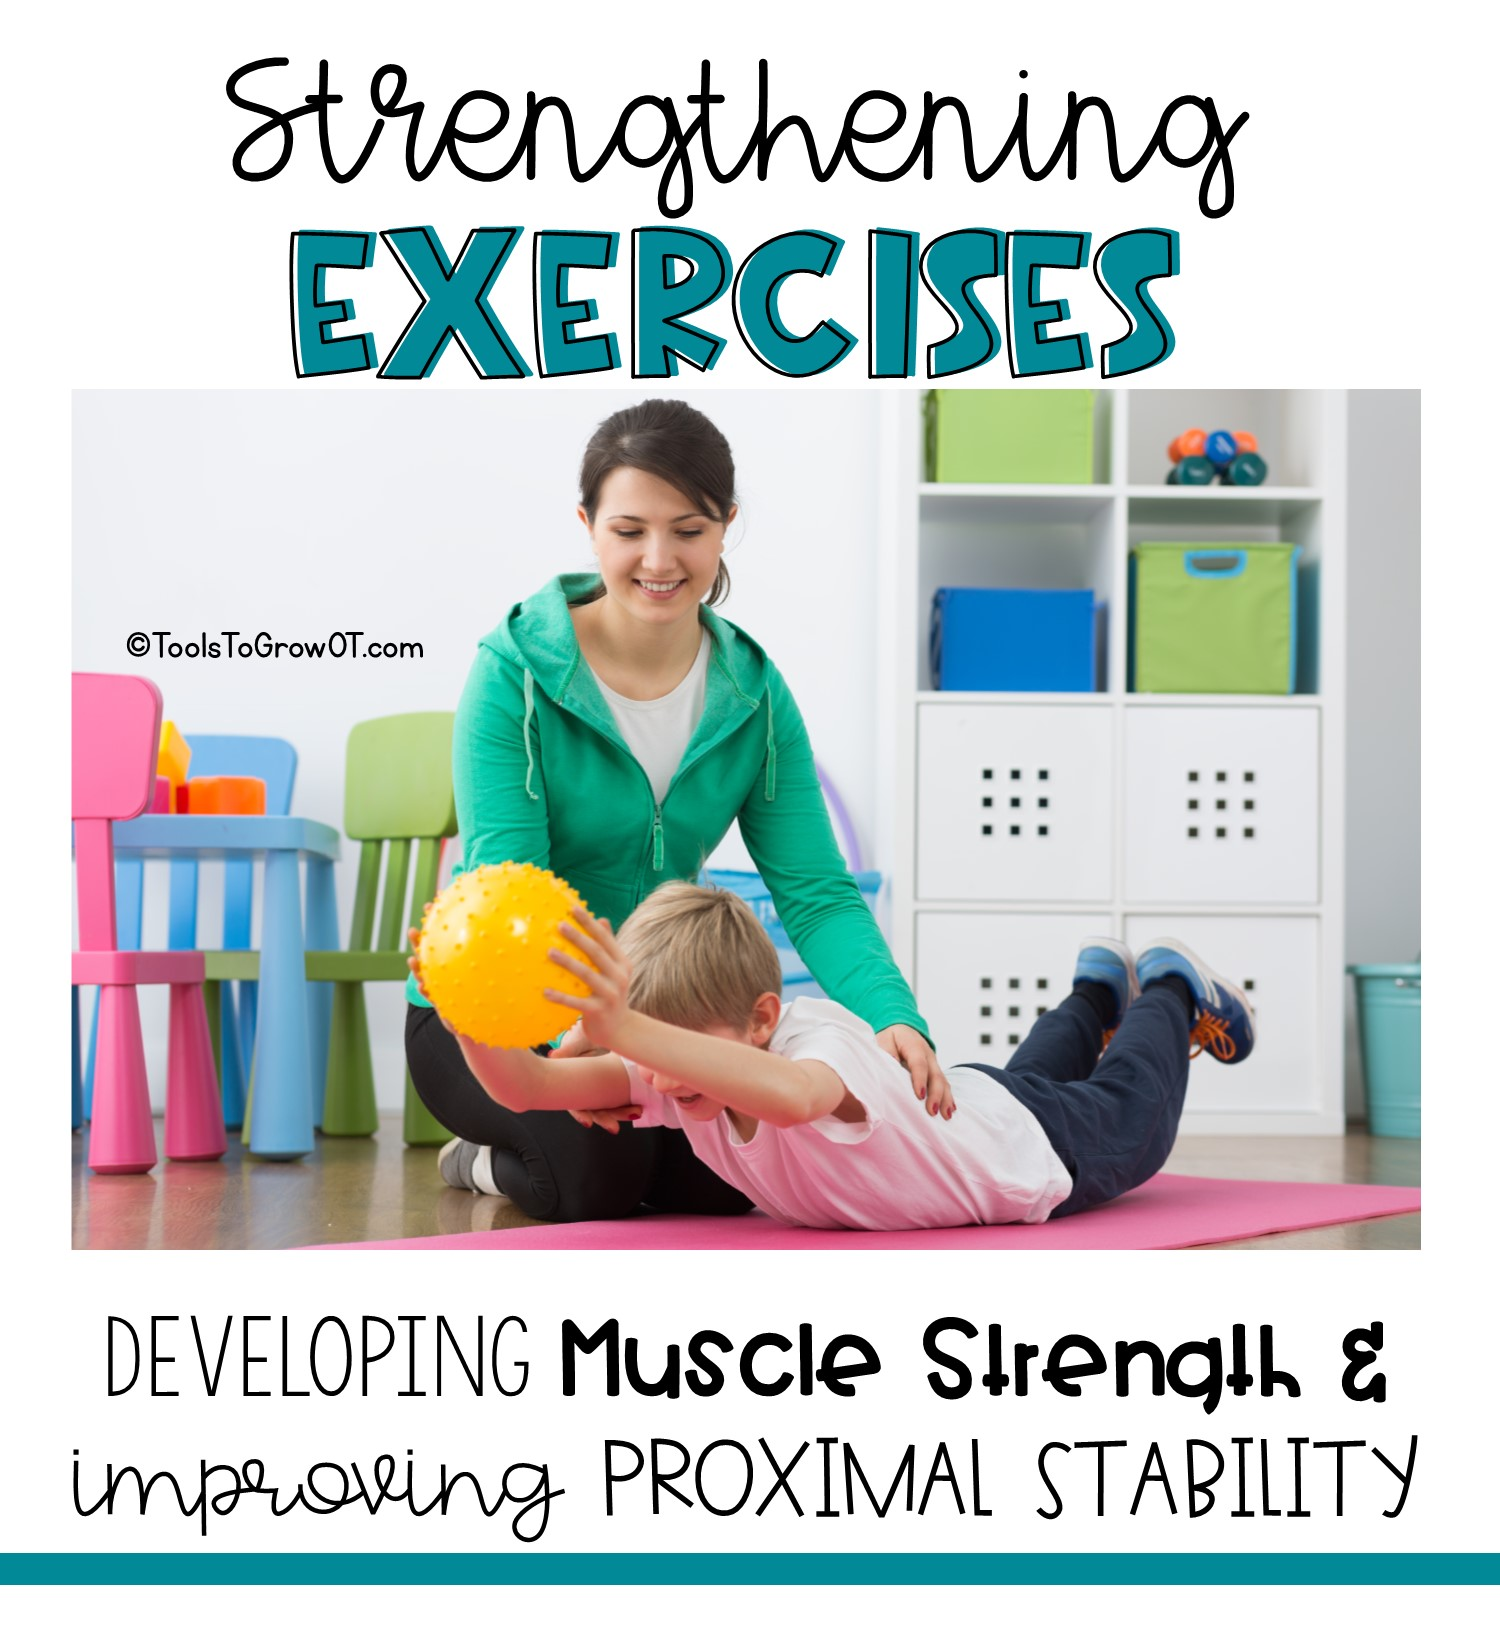 Strengthening Exercises Developing Muscle Strength And